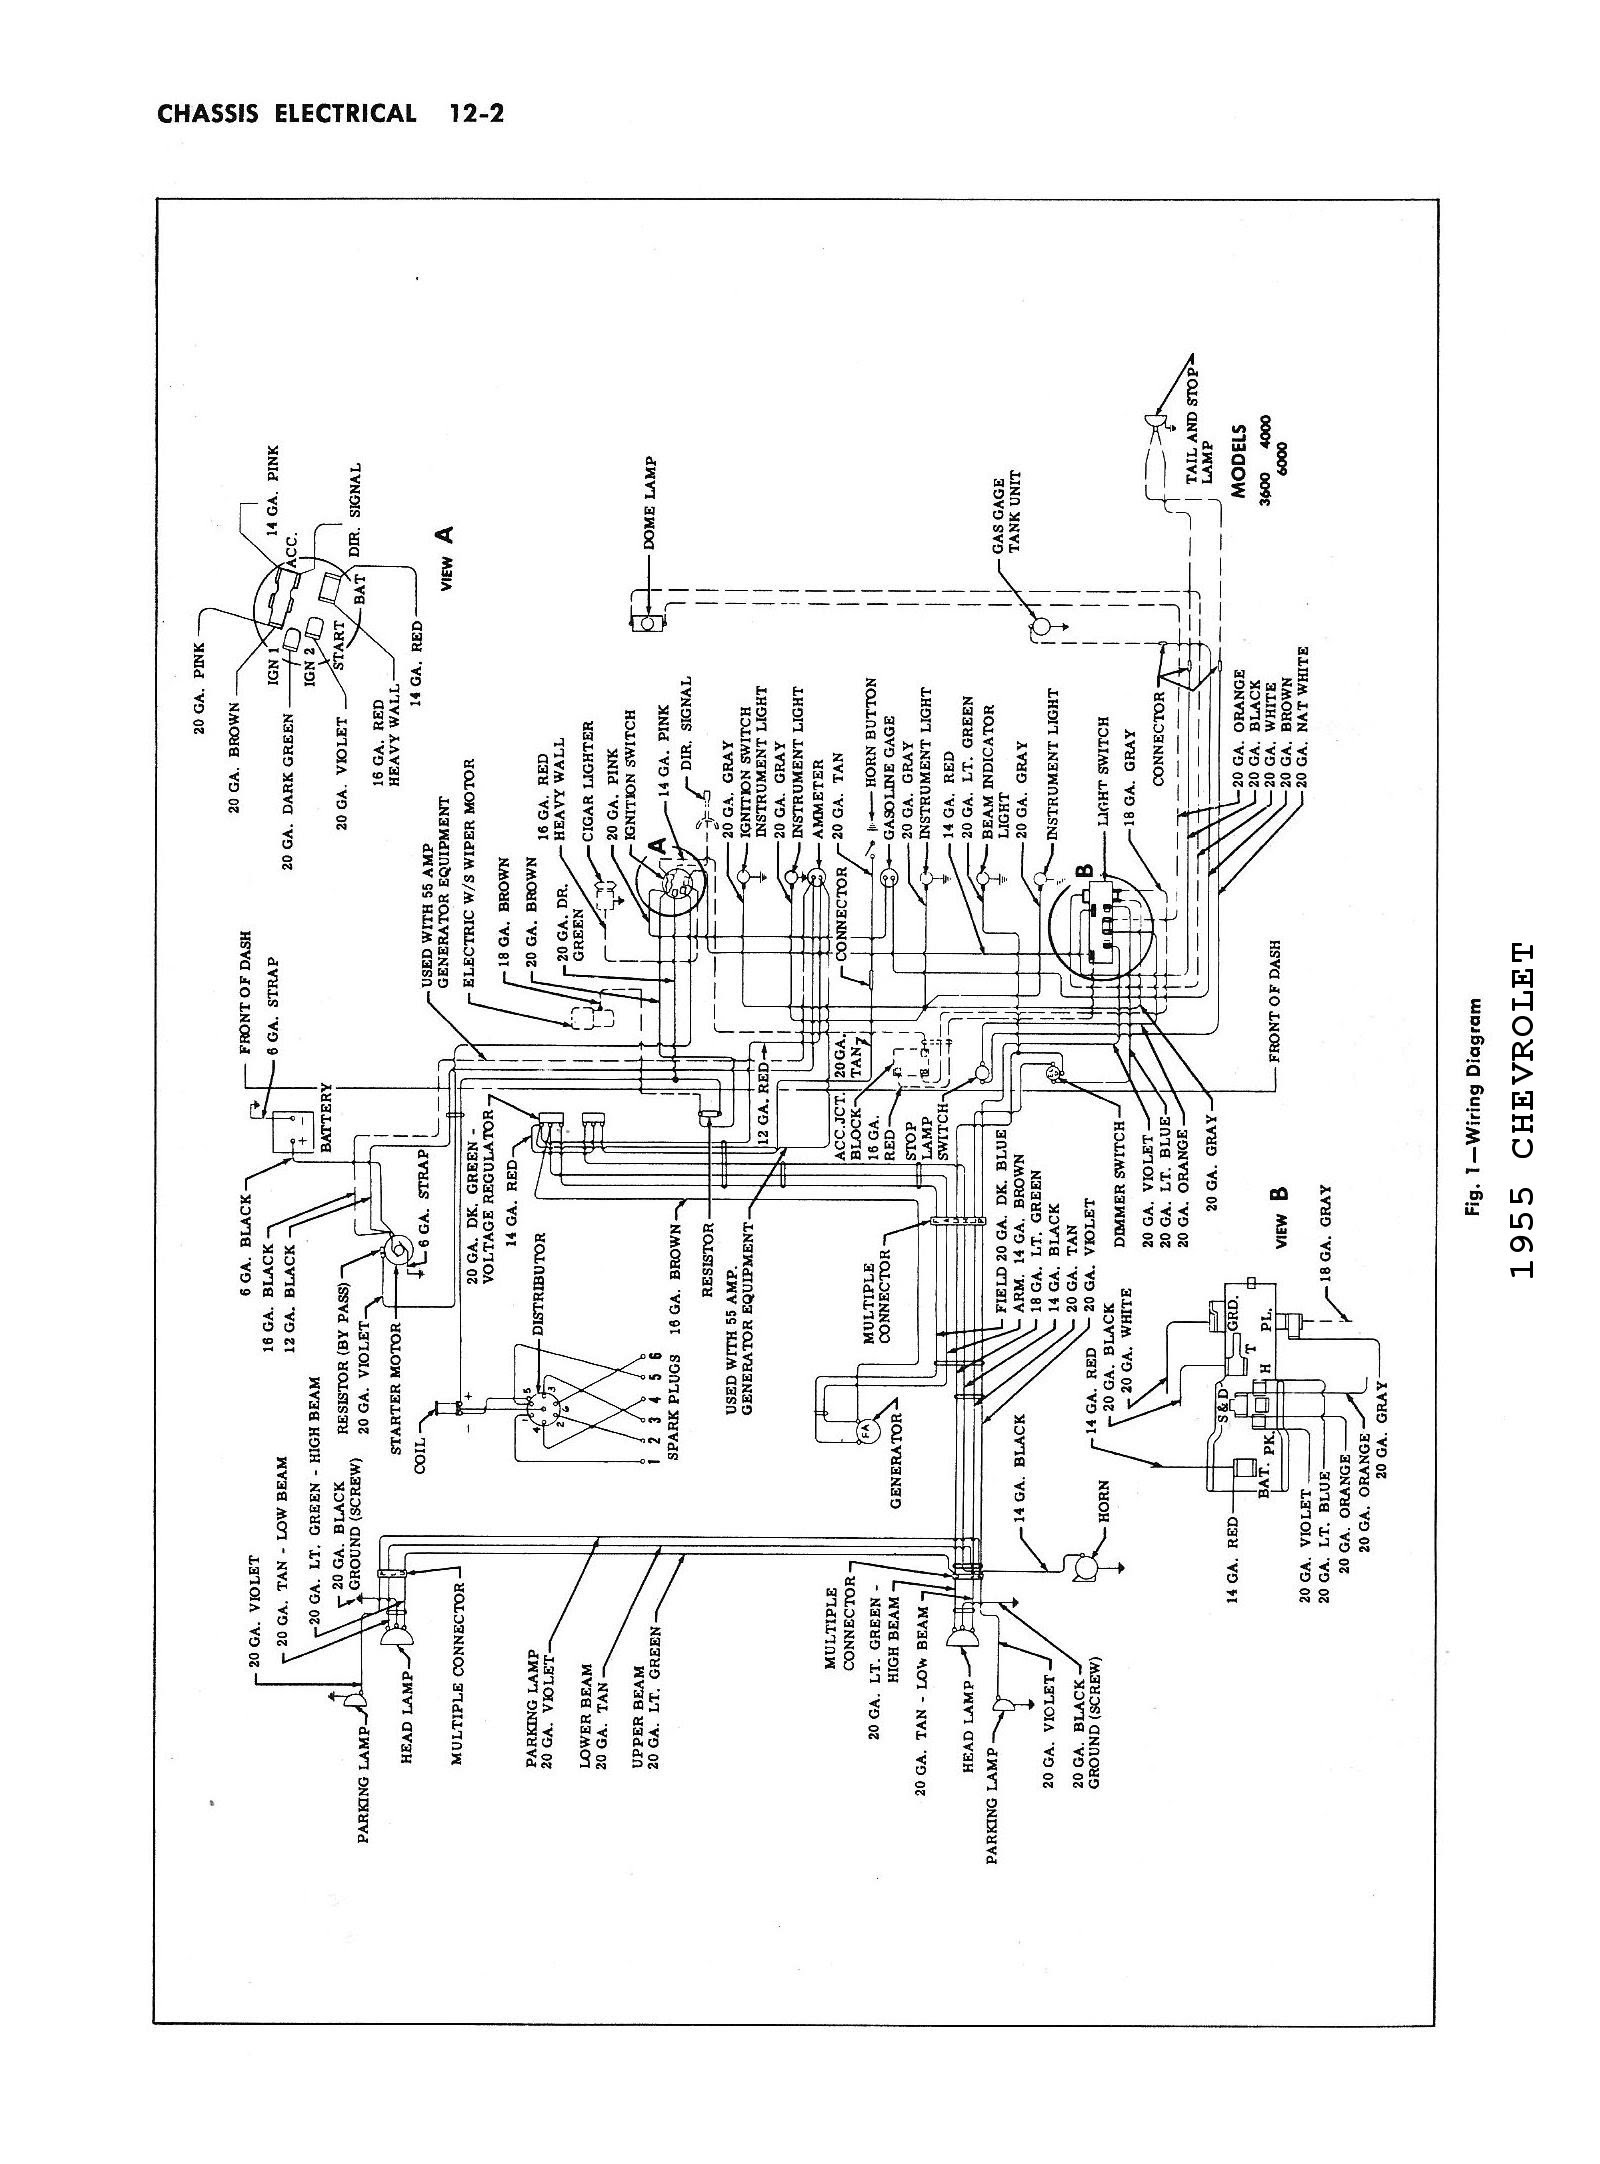 Diagram 1969 Chevy Truck Ignition Wiring Diagram Full Version Hd Quality Wiring Diagram Marketing Diagram Yannickserrano Fr